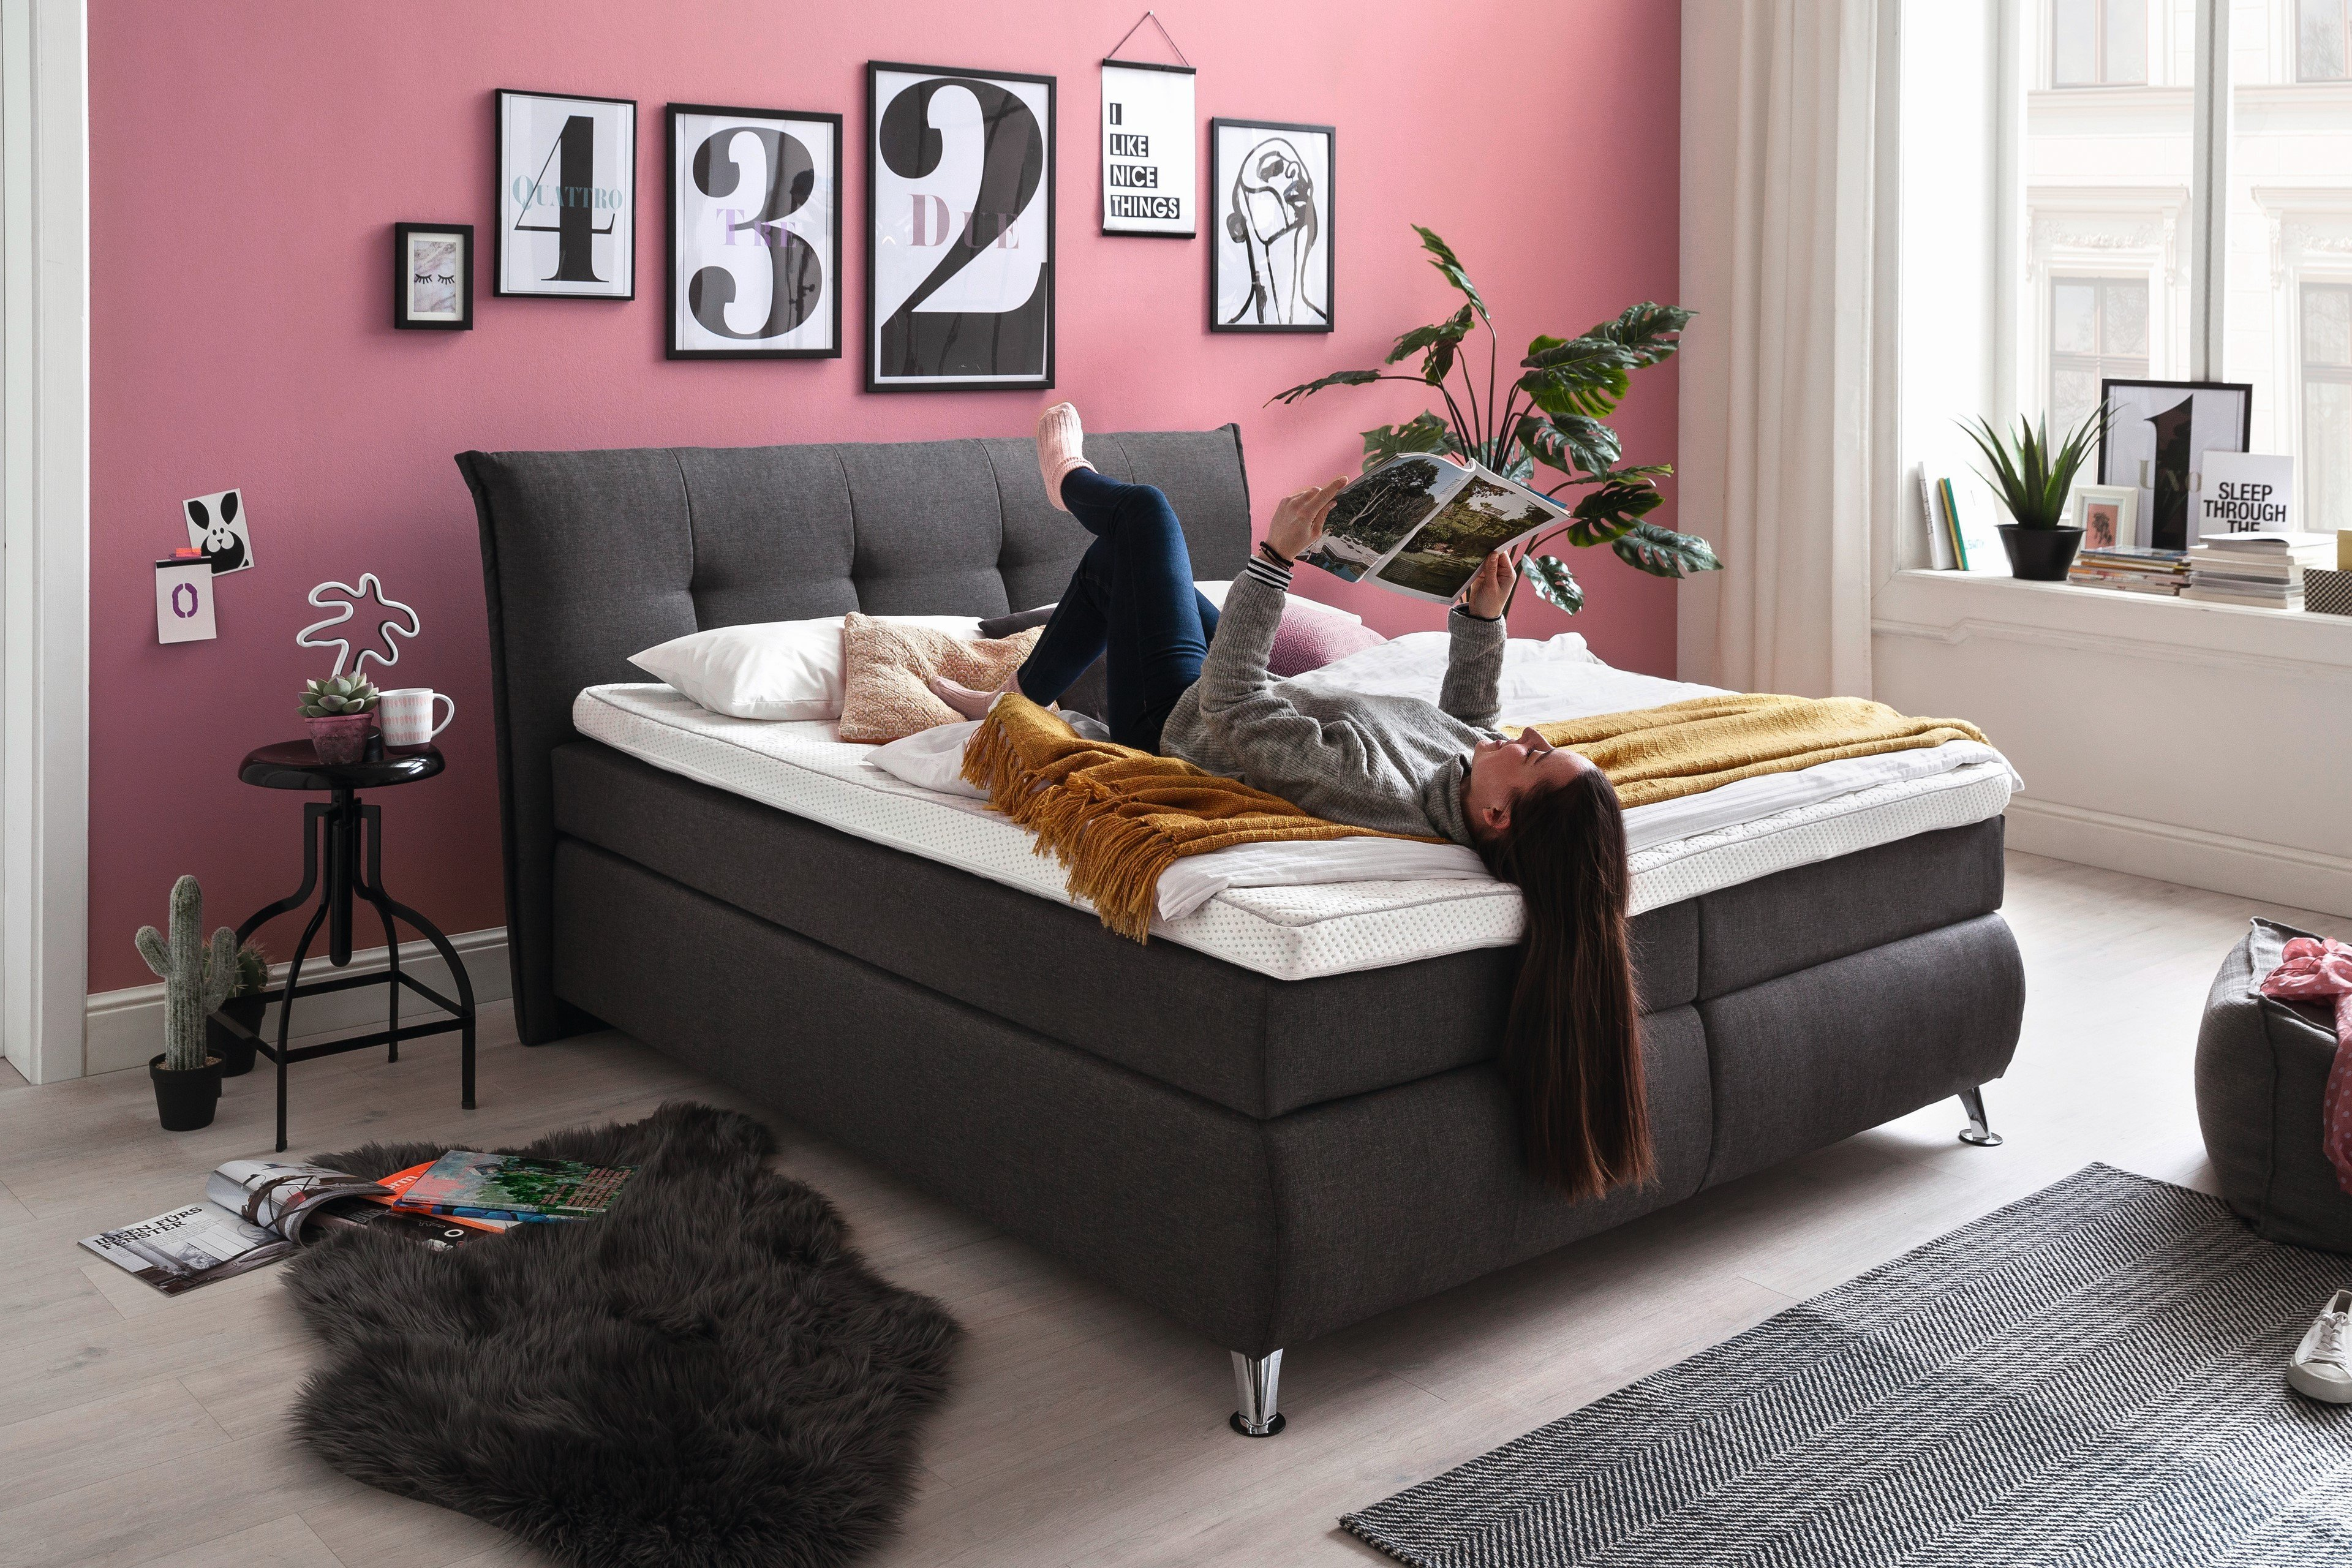 Boxspringbett Anthrazit Hapo Lexos Boxspringbett In Anthrazit Möbel Letz Ihr